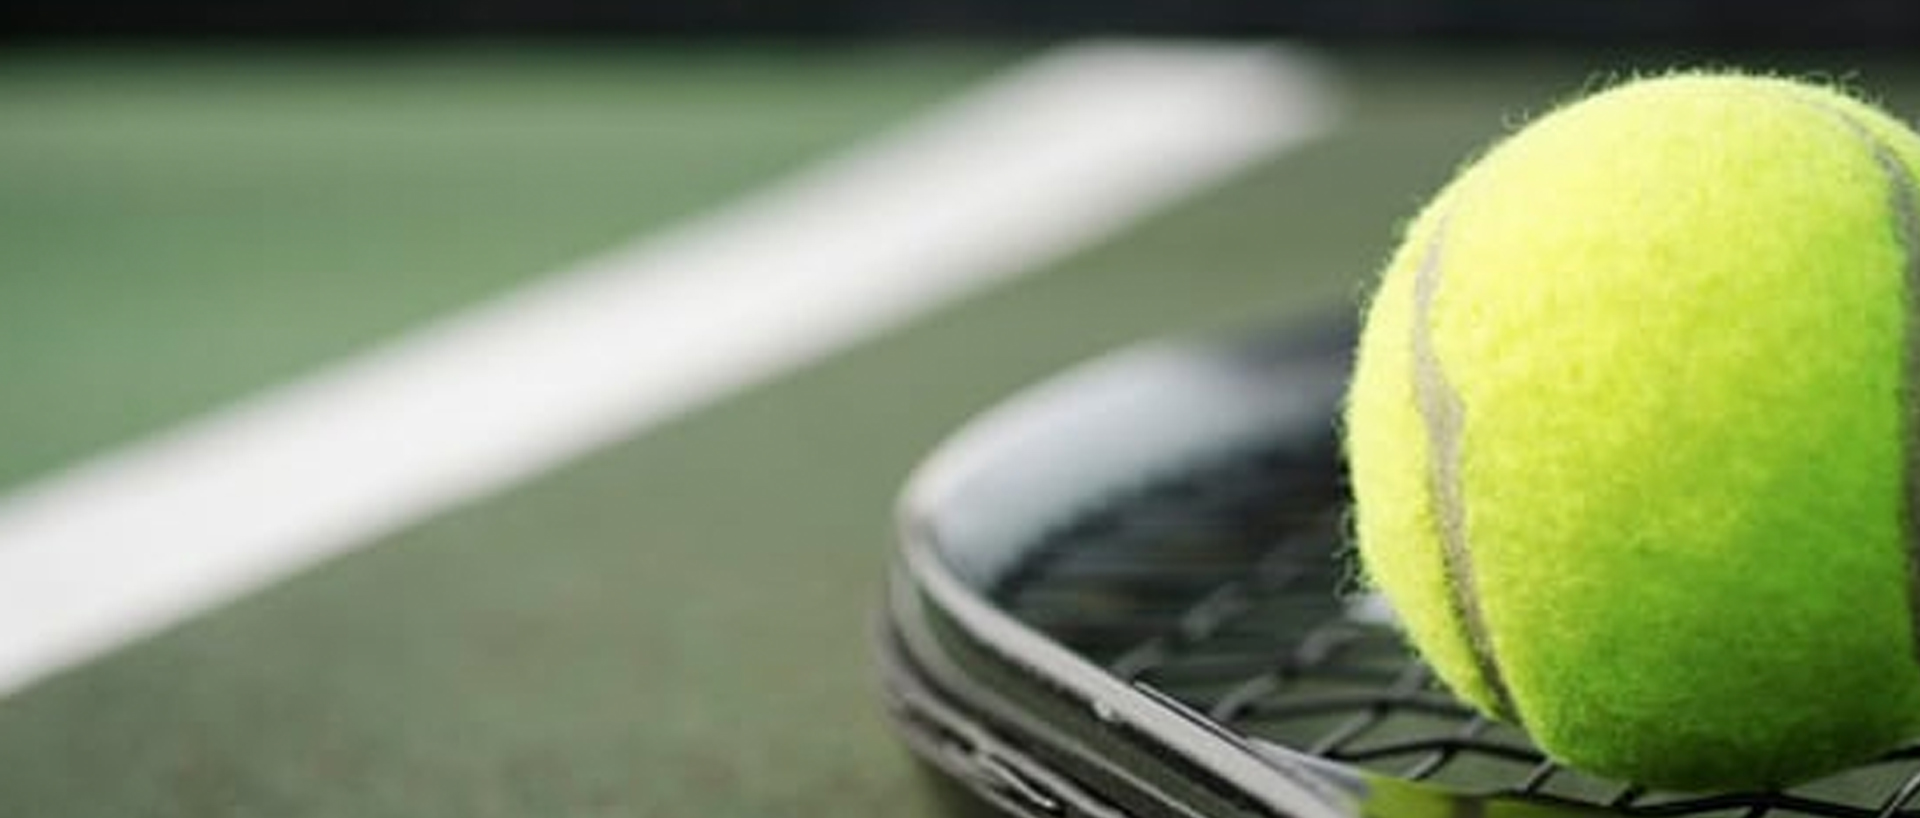 A close-up photo of a tennis ball and a tennis racket sitting on the floor of a tennis court